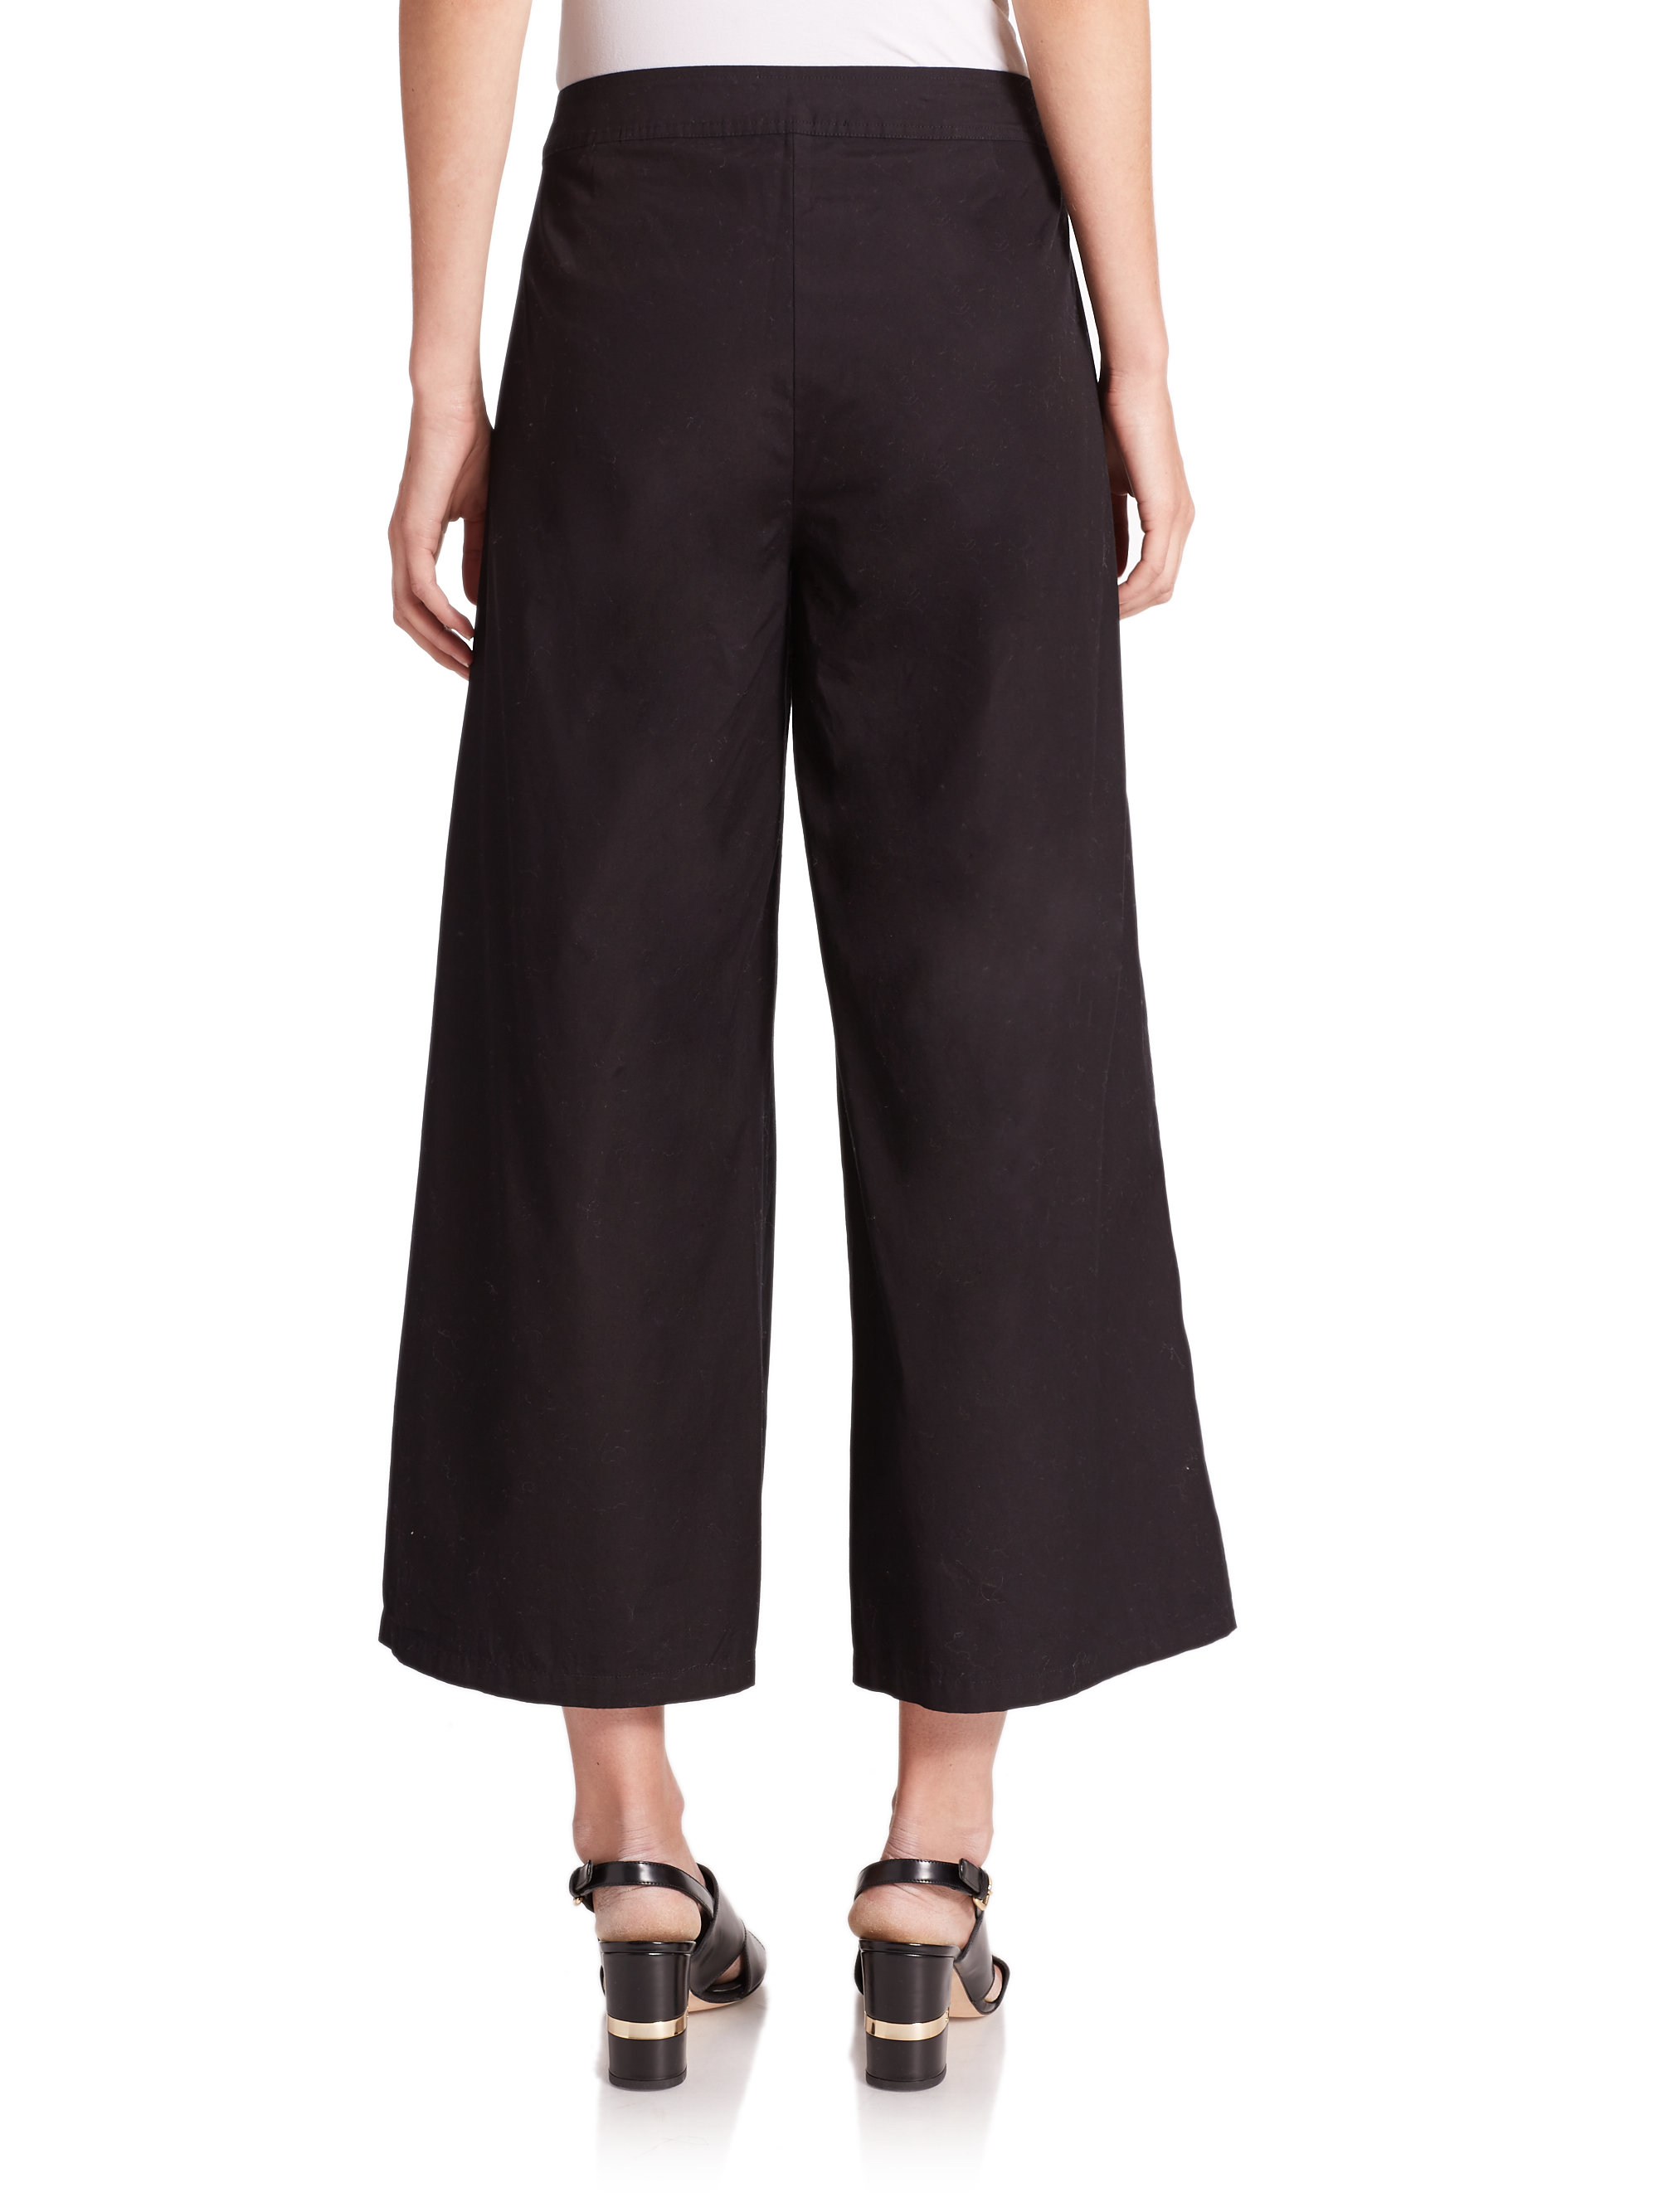 Styling Cropped Trousers. Cropped dress pants can be styled so many ways making them a smart style investment for revamping your wardrobe. These cute cropped pants sit at the waist with a smooth front and sleek straight leg openings in a shorter length. Shop cropped pants for women in a wide array of colors and prints.